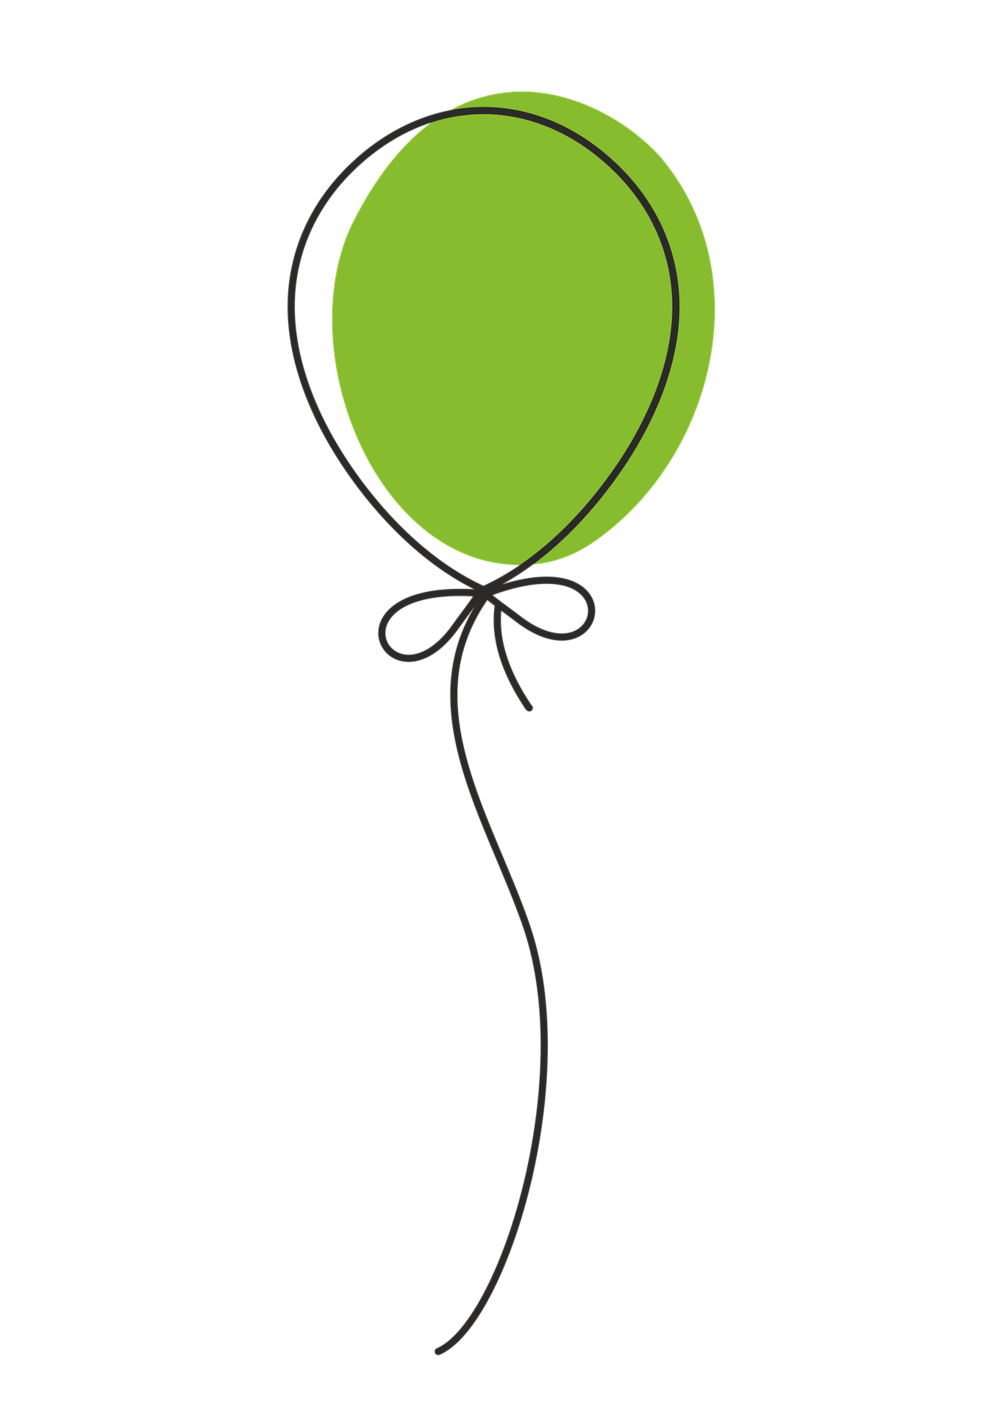 balloon-1762994_1920.png